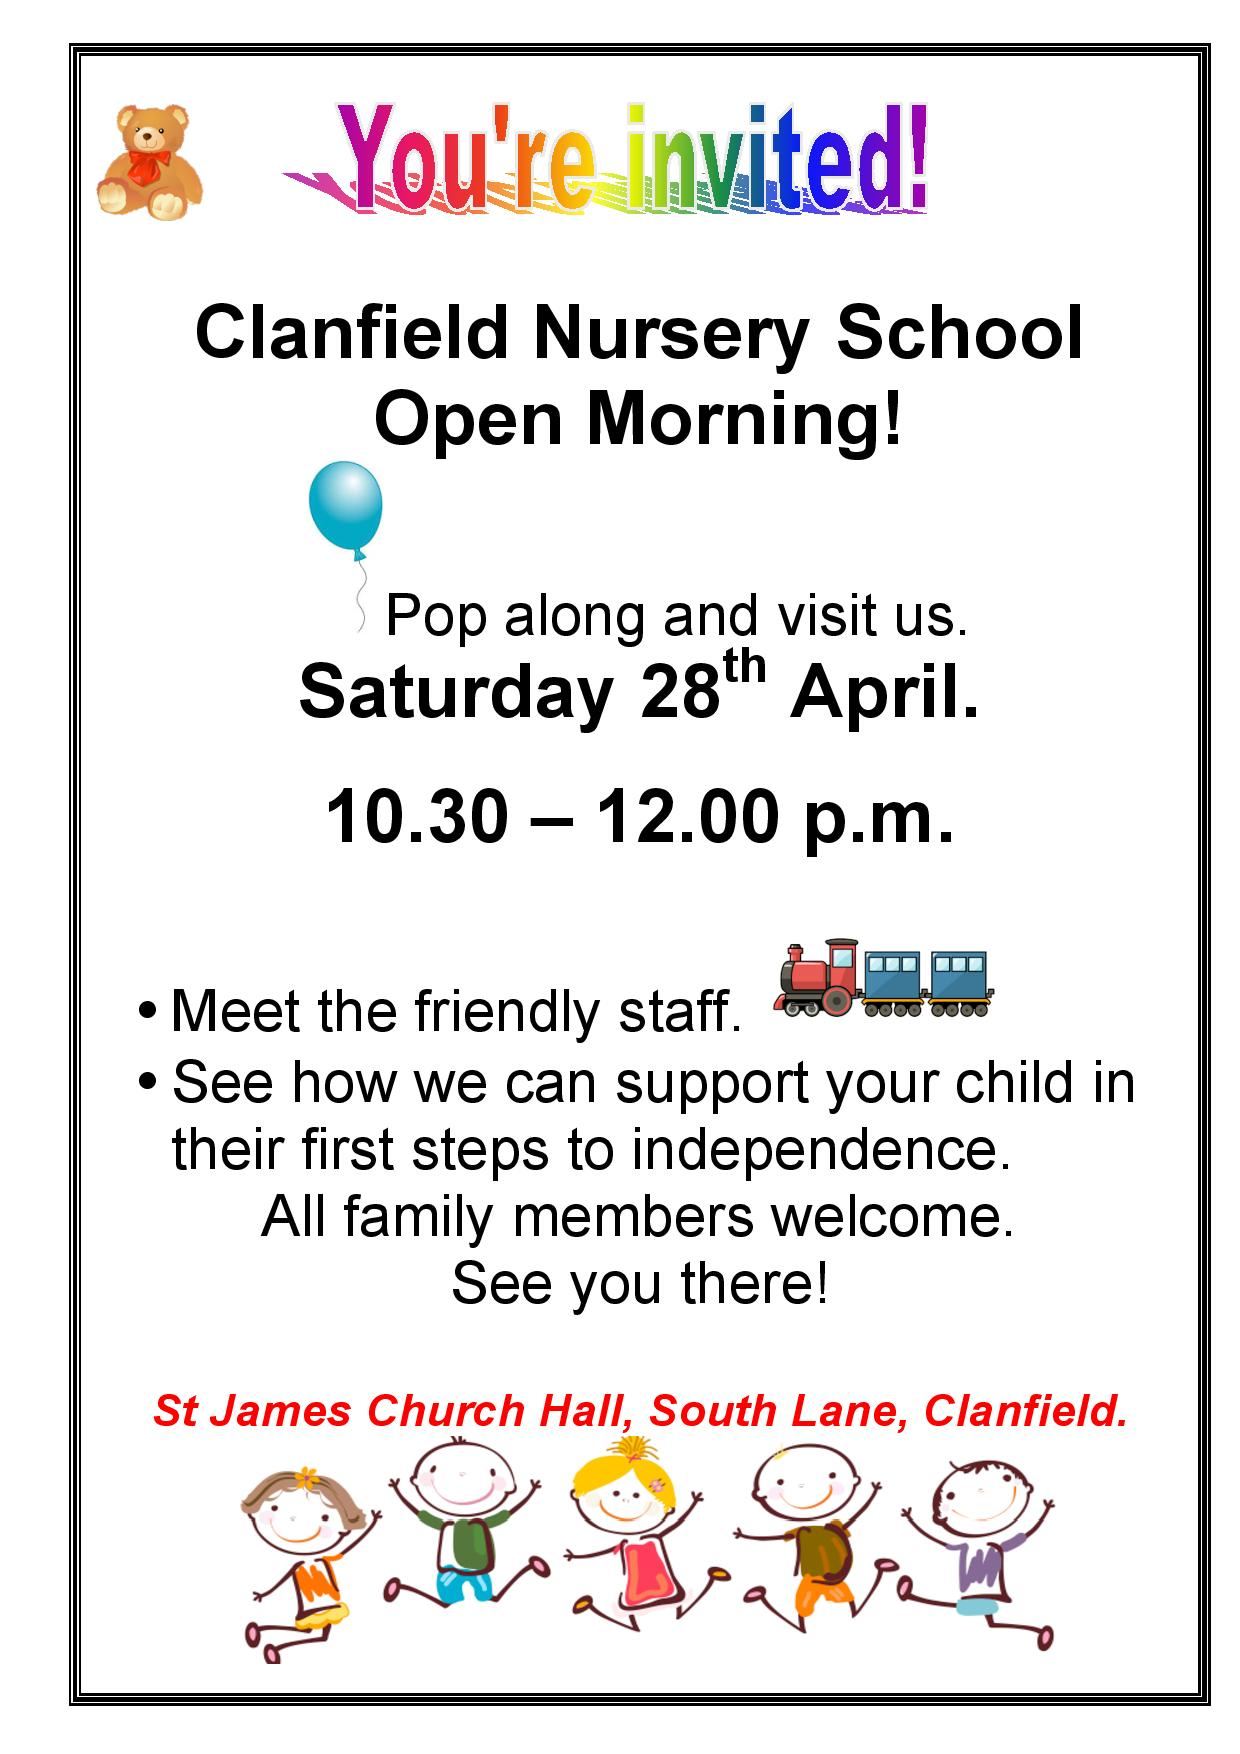 Come and Play - Clanfield Nursery School